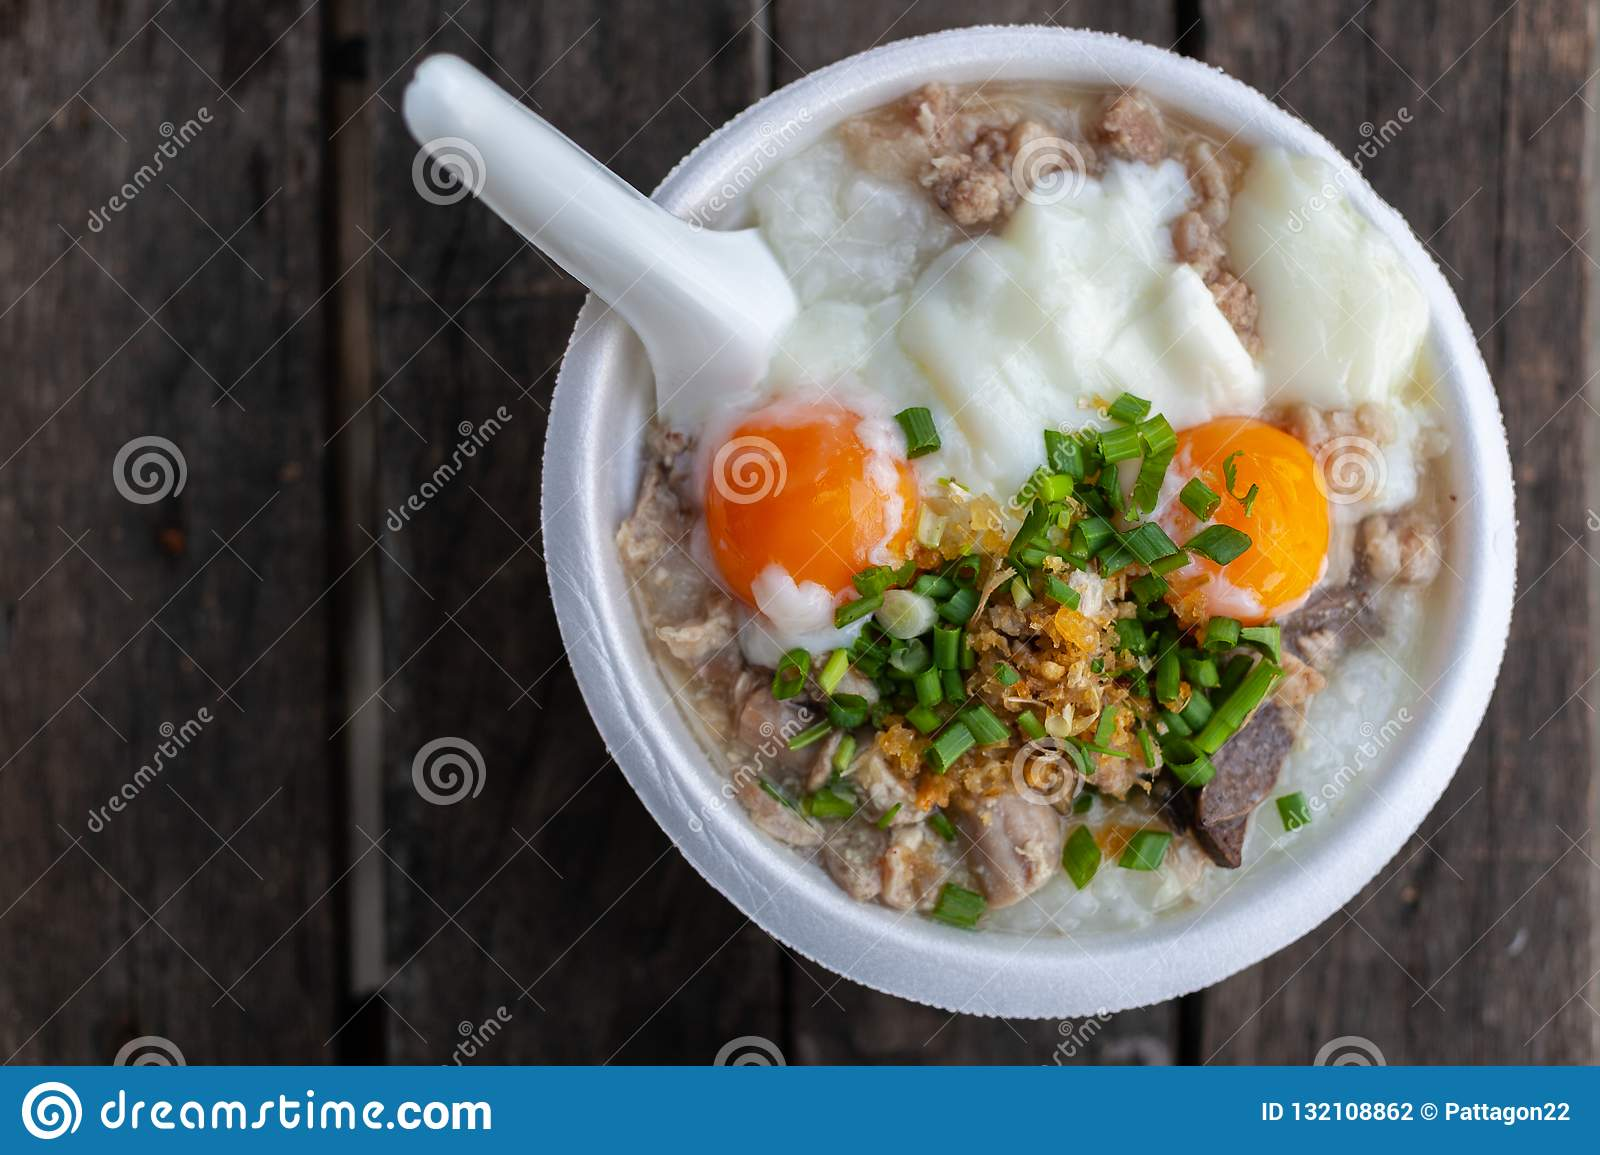 Rice Porridge With Pork Chops And Boiled Egg Stock Photo